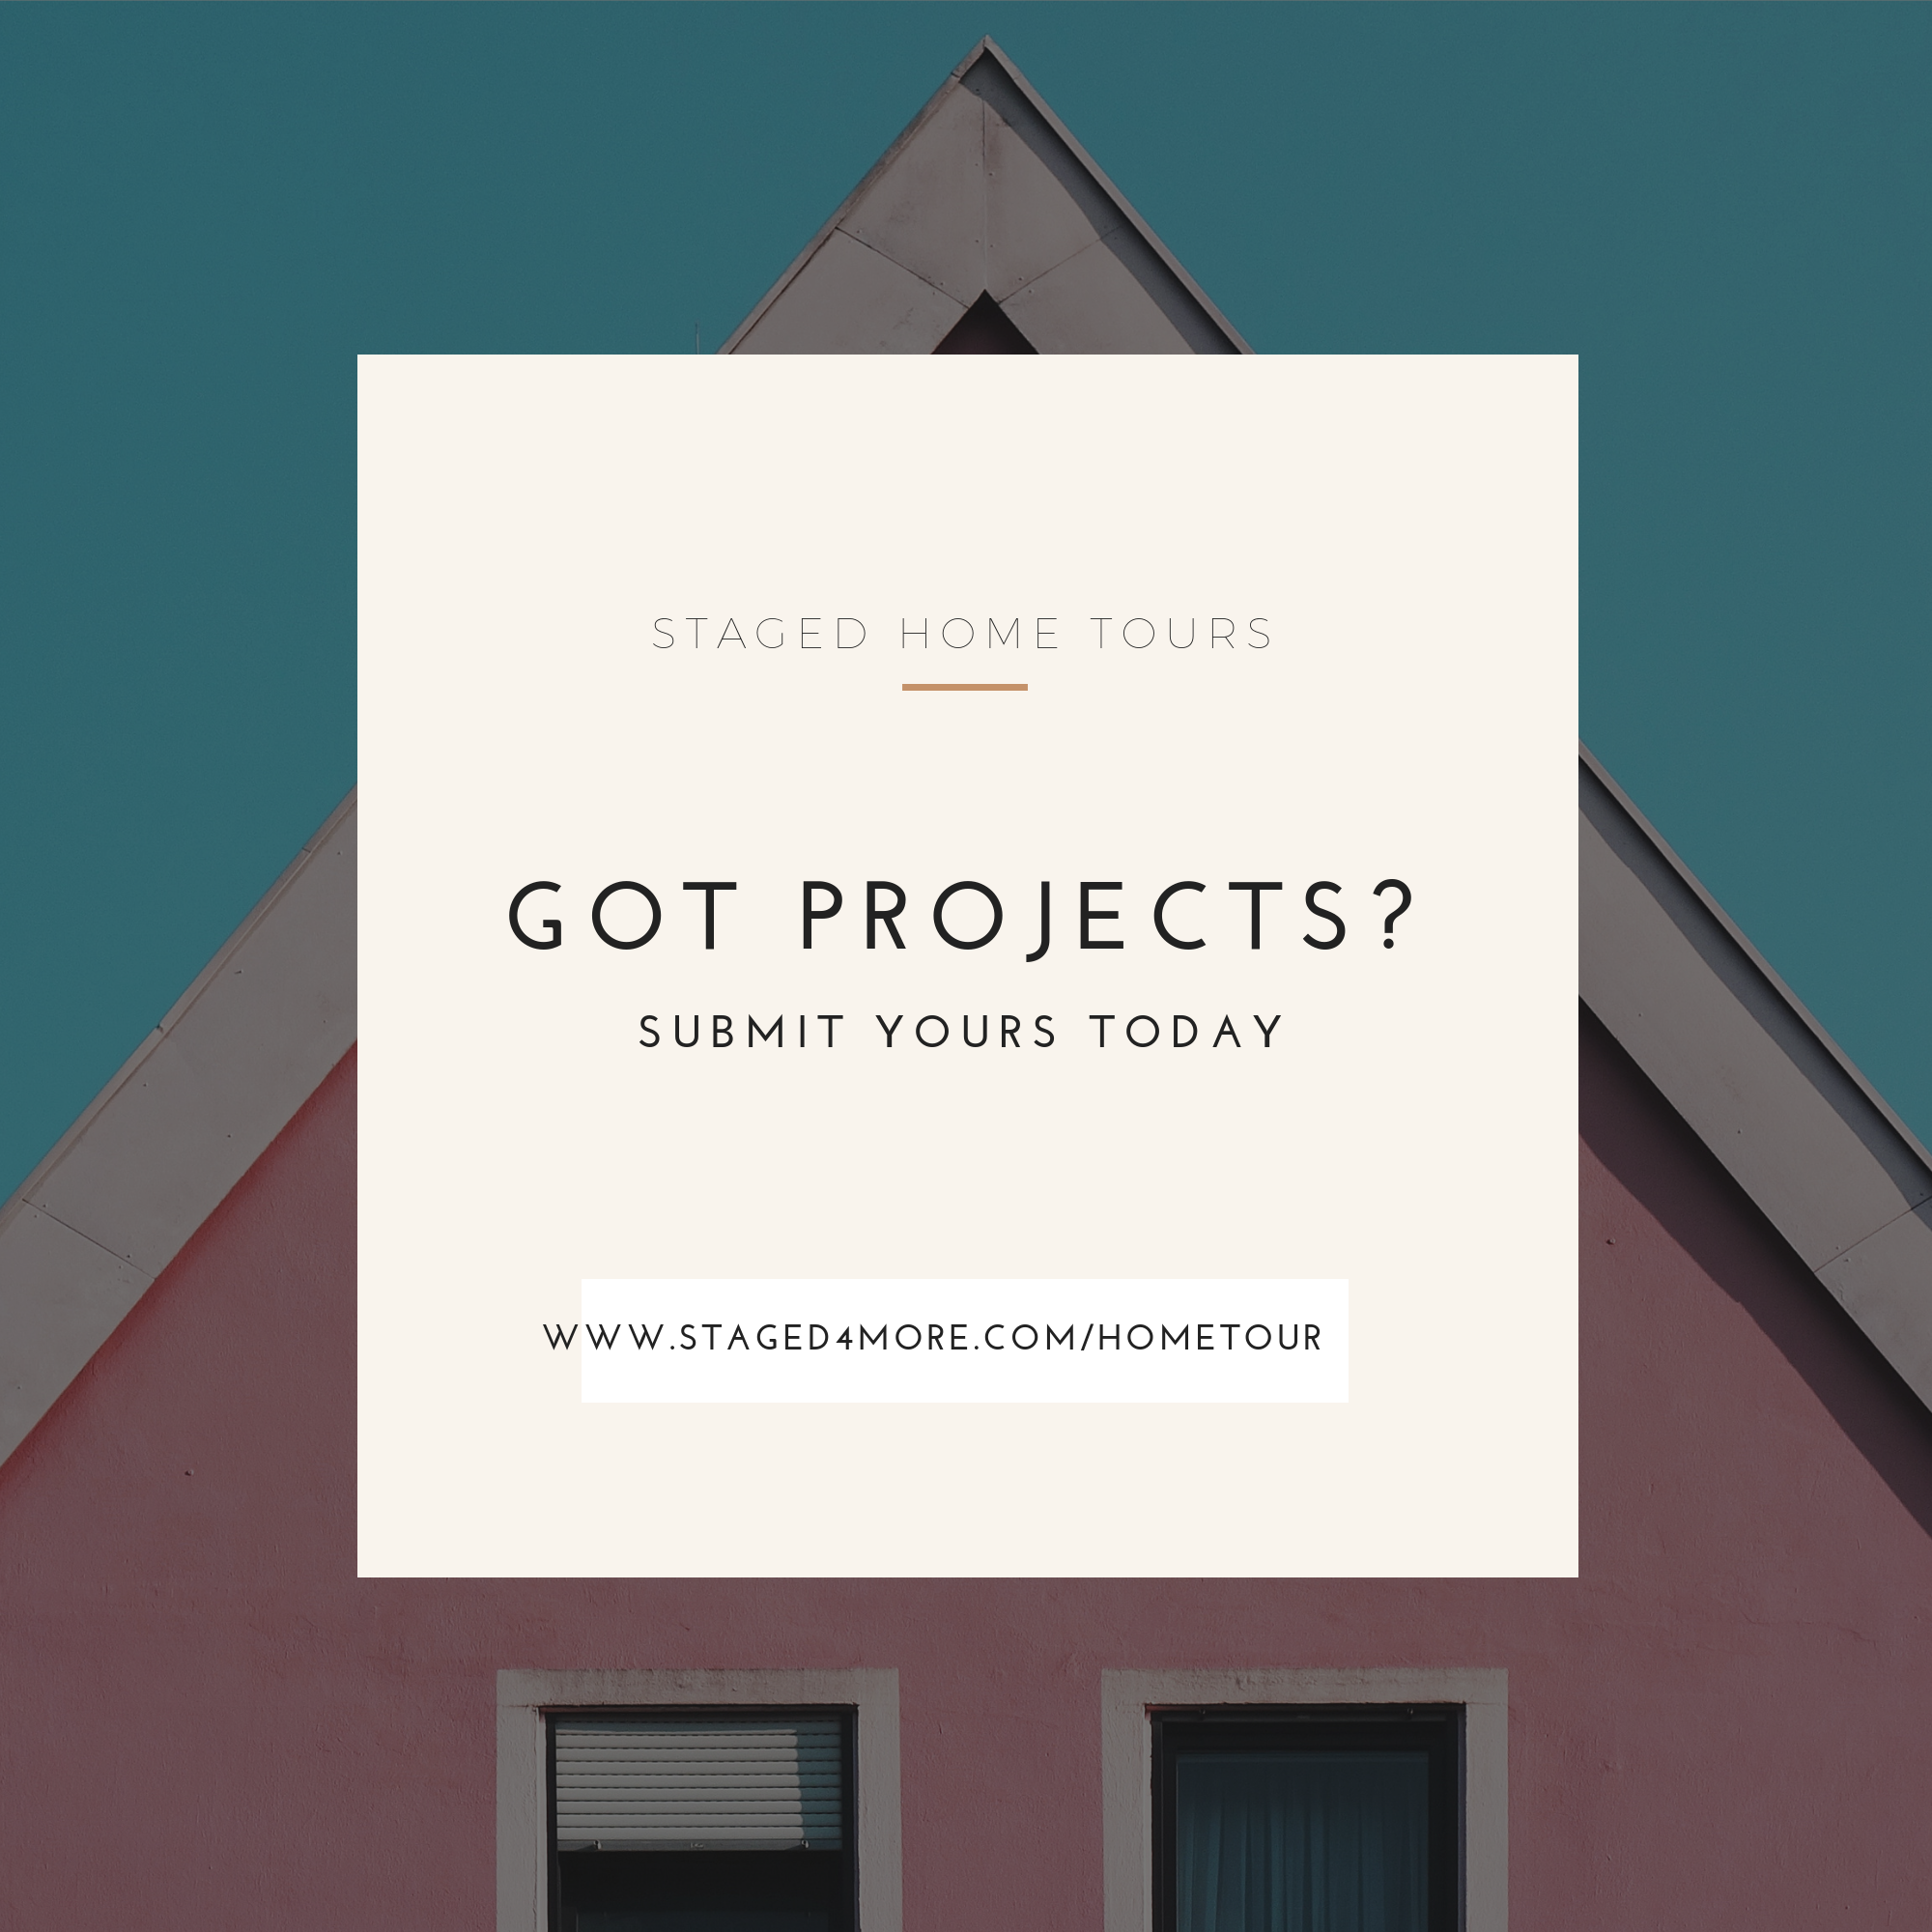 Submit your staged home project to Staged4more School of Home Staging